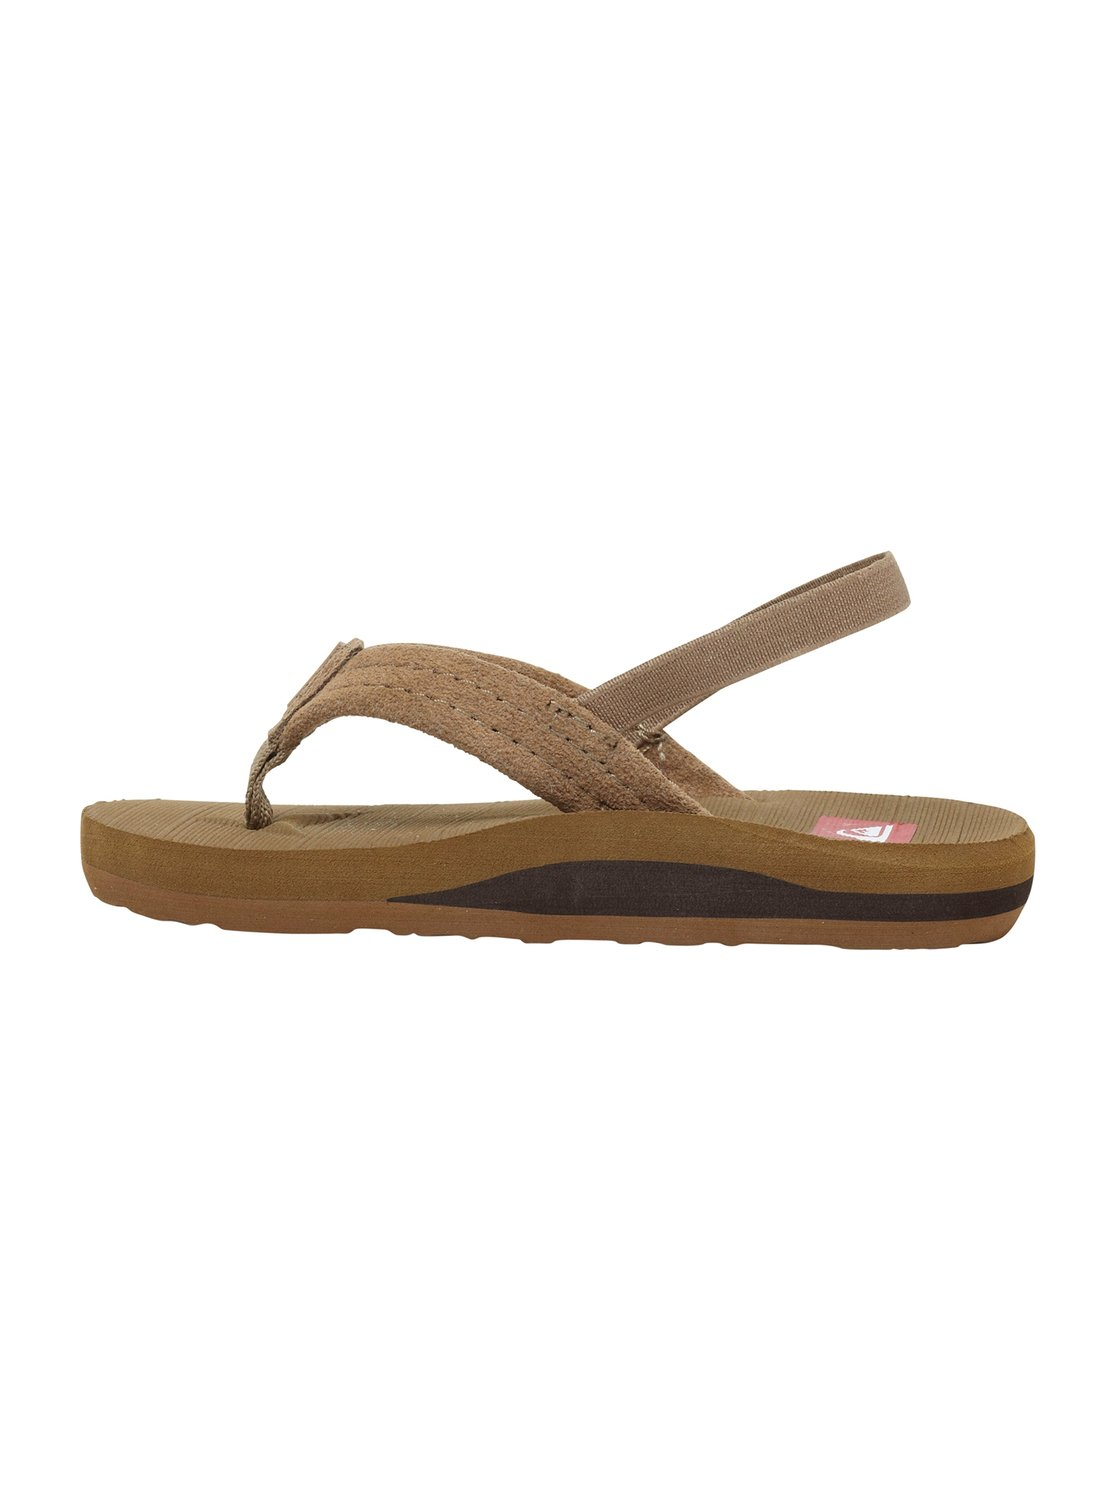 Toddler Carver Suede 2 Sandals T257054 Quiksilver